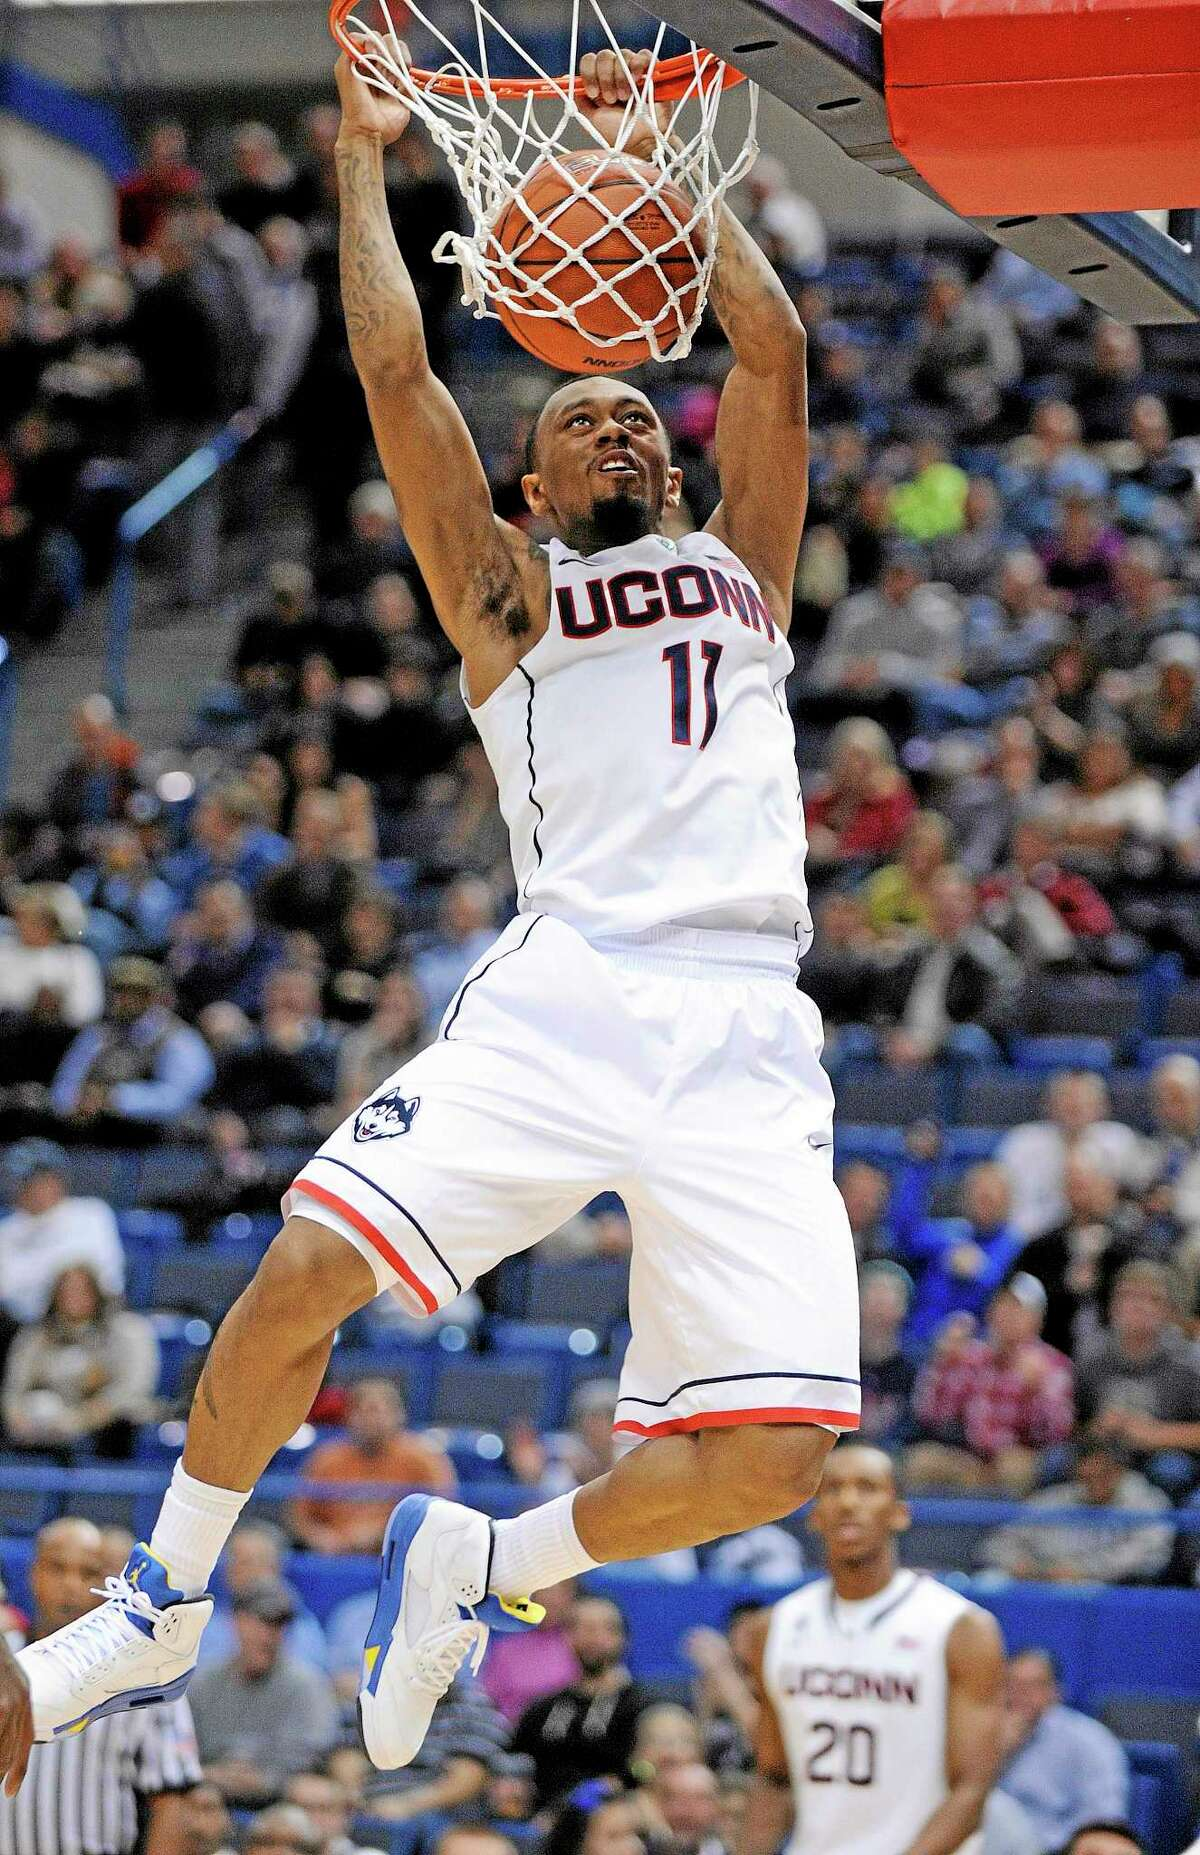 UConn's Ryan Boatright scores two of his team-high 17 points during the first half of the 12th-ranked Huskies' 95-68 victory over Maine on Friday night at the XL Center in Hartford.